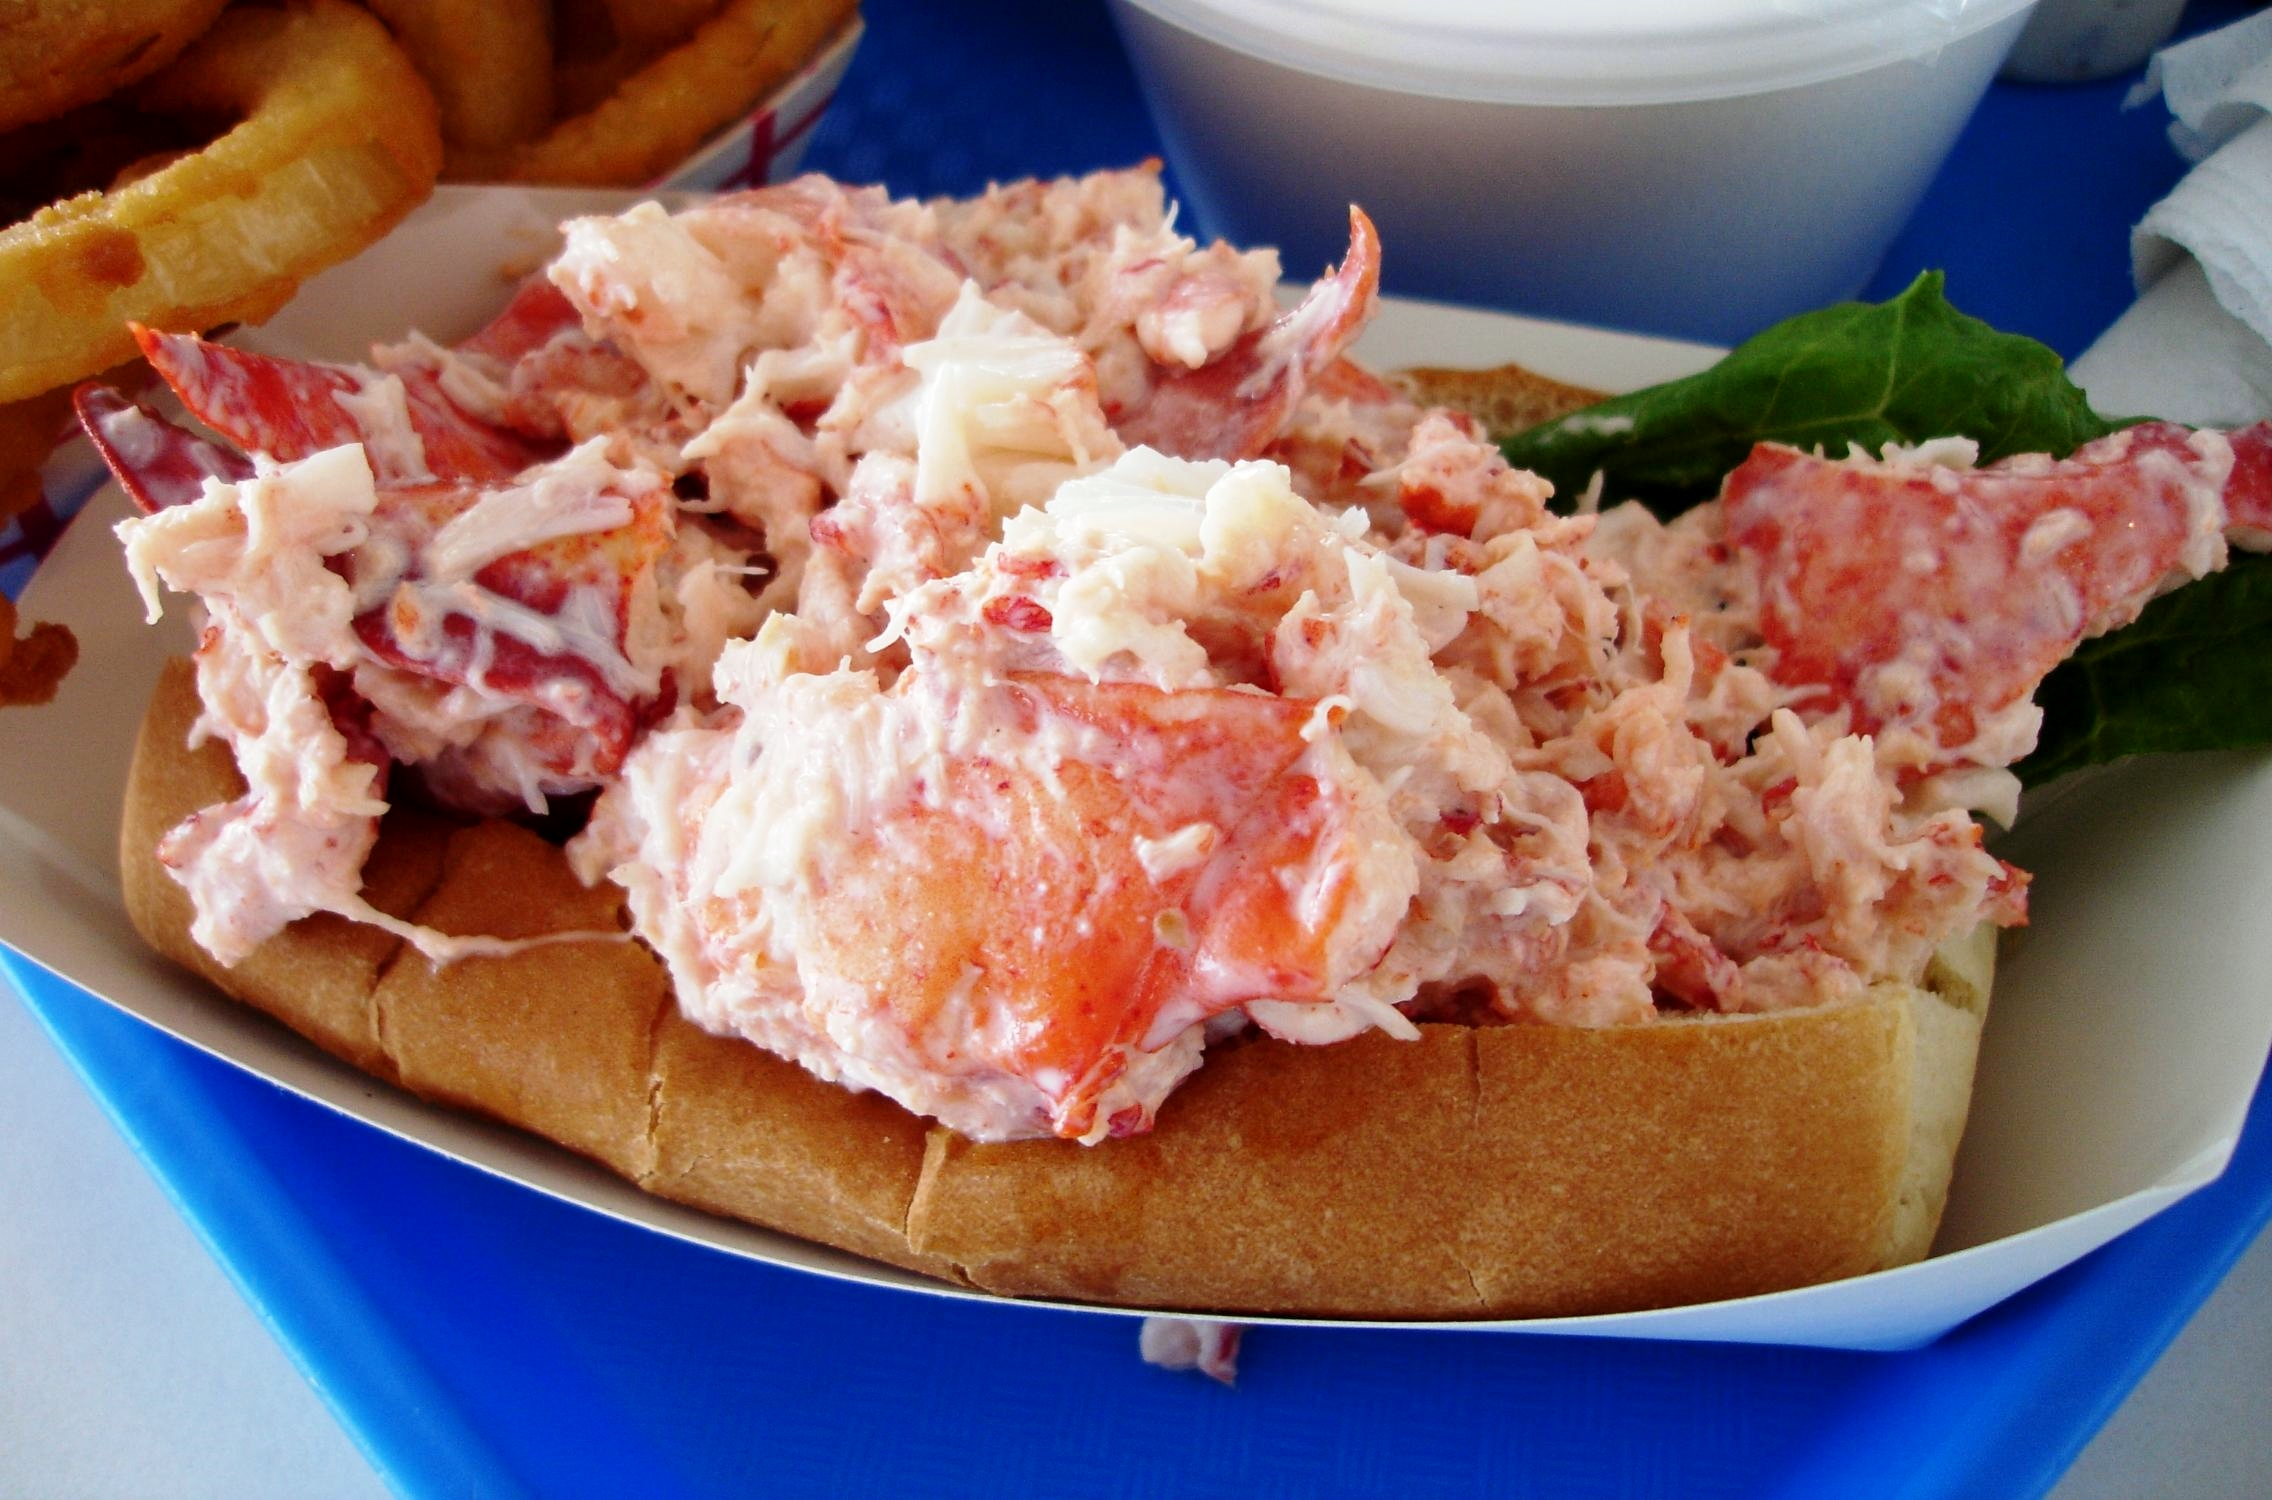 Markey's lobster roll is filled with large chunks of claw meat and a judicious amount of mayo.